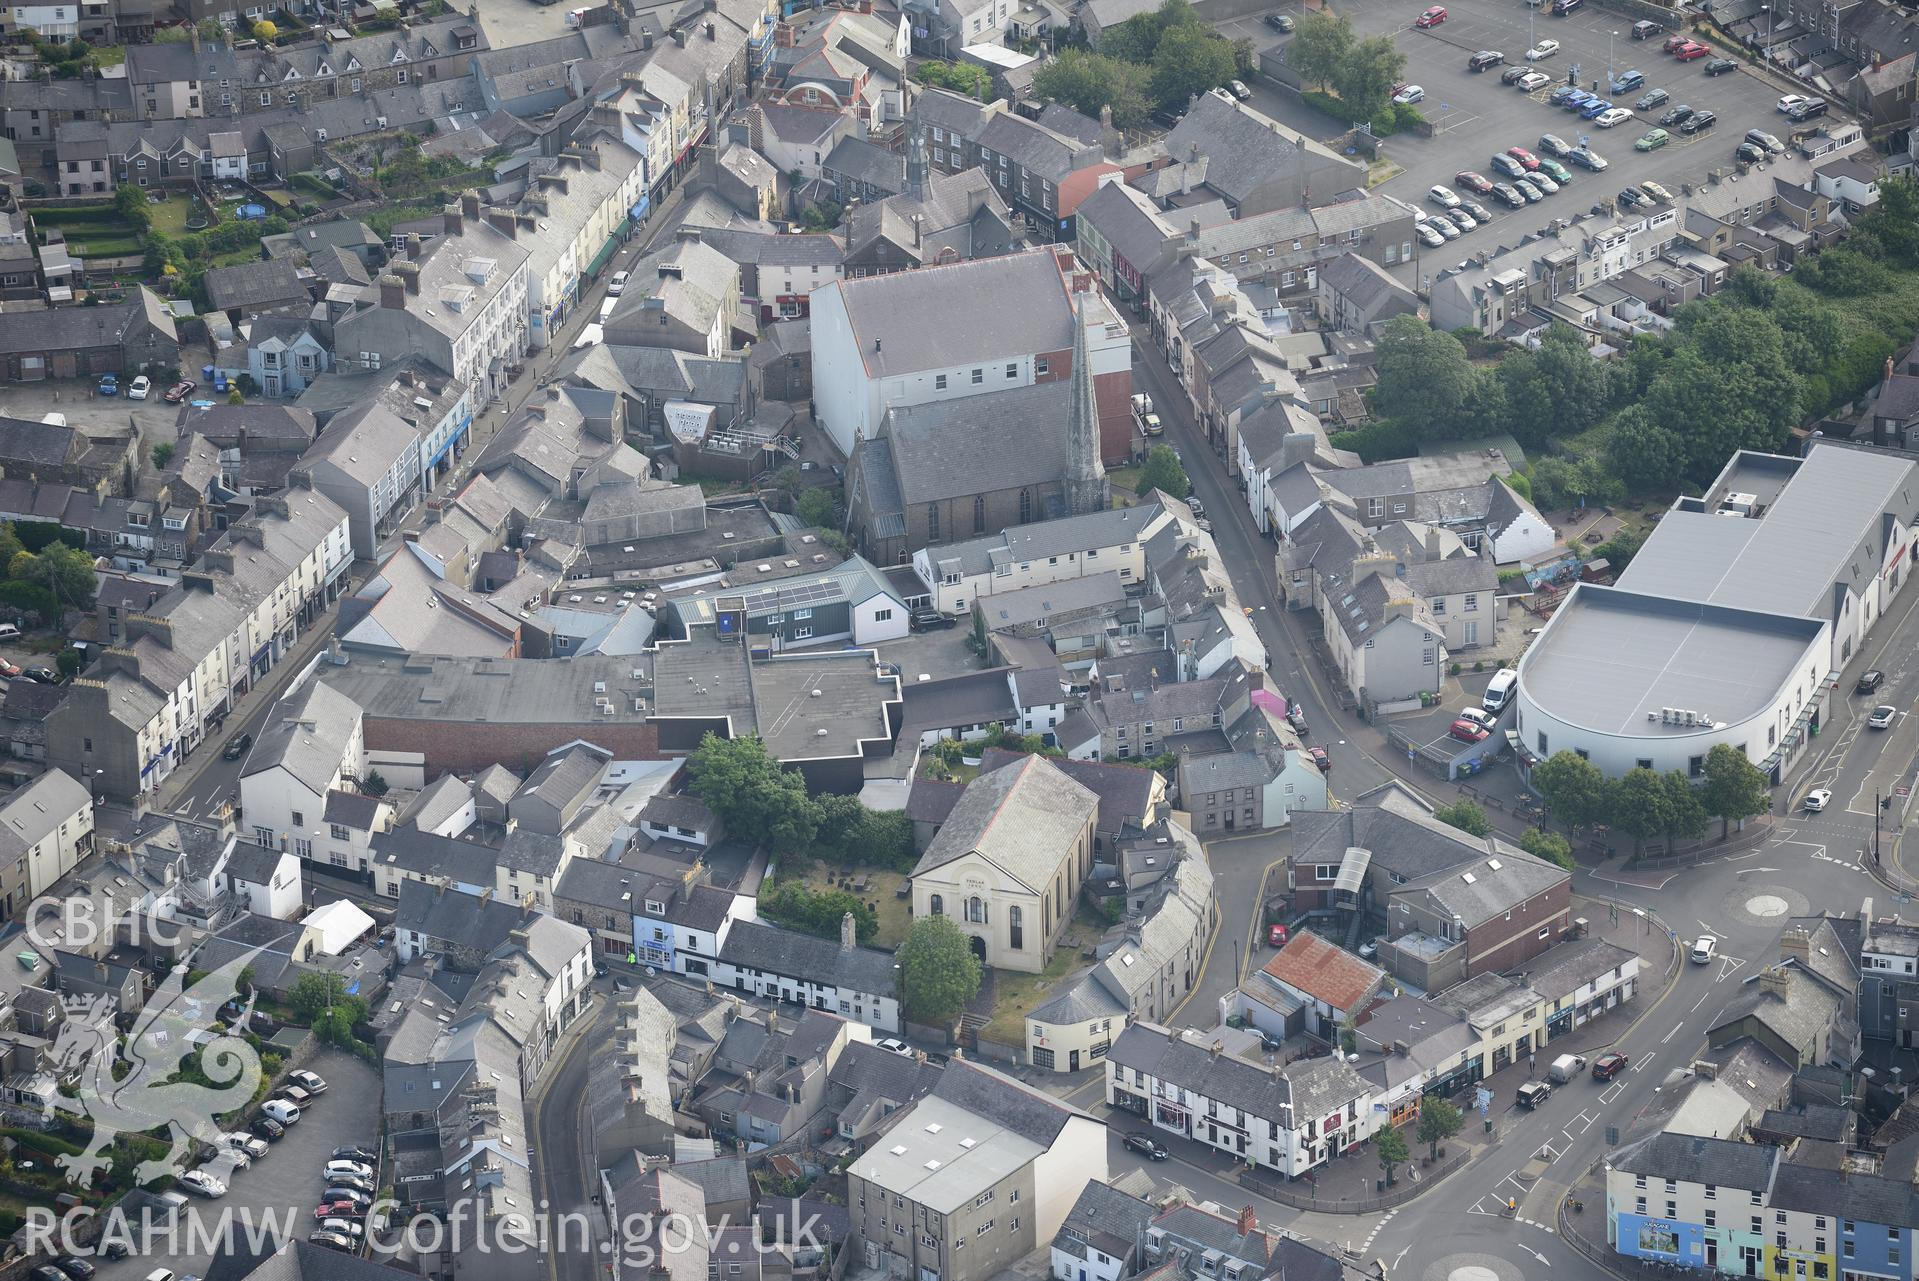 Pen-Lan Independent Chapel; Tabernacl Baptist Chapel, old Town Hall and new Town Hall (cinema), Pwllheli. Oblique aerial photograph taken during the Royal Commission's programme of archaeological aerial reconnaissance by Toby Driver on 23rd June 2015.